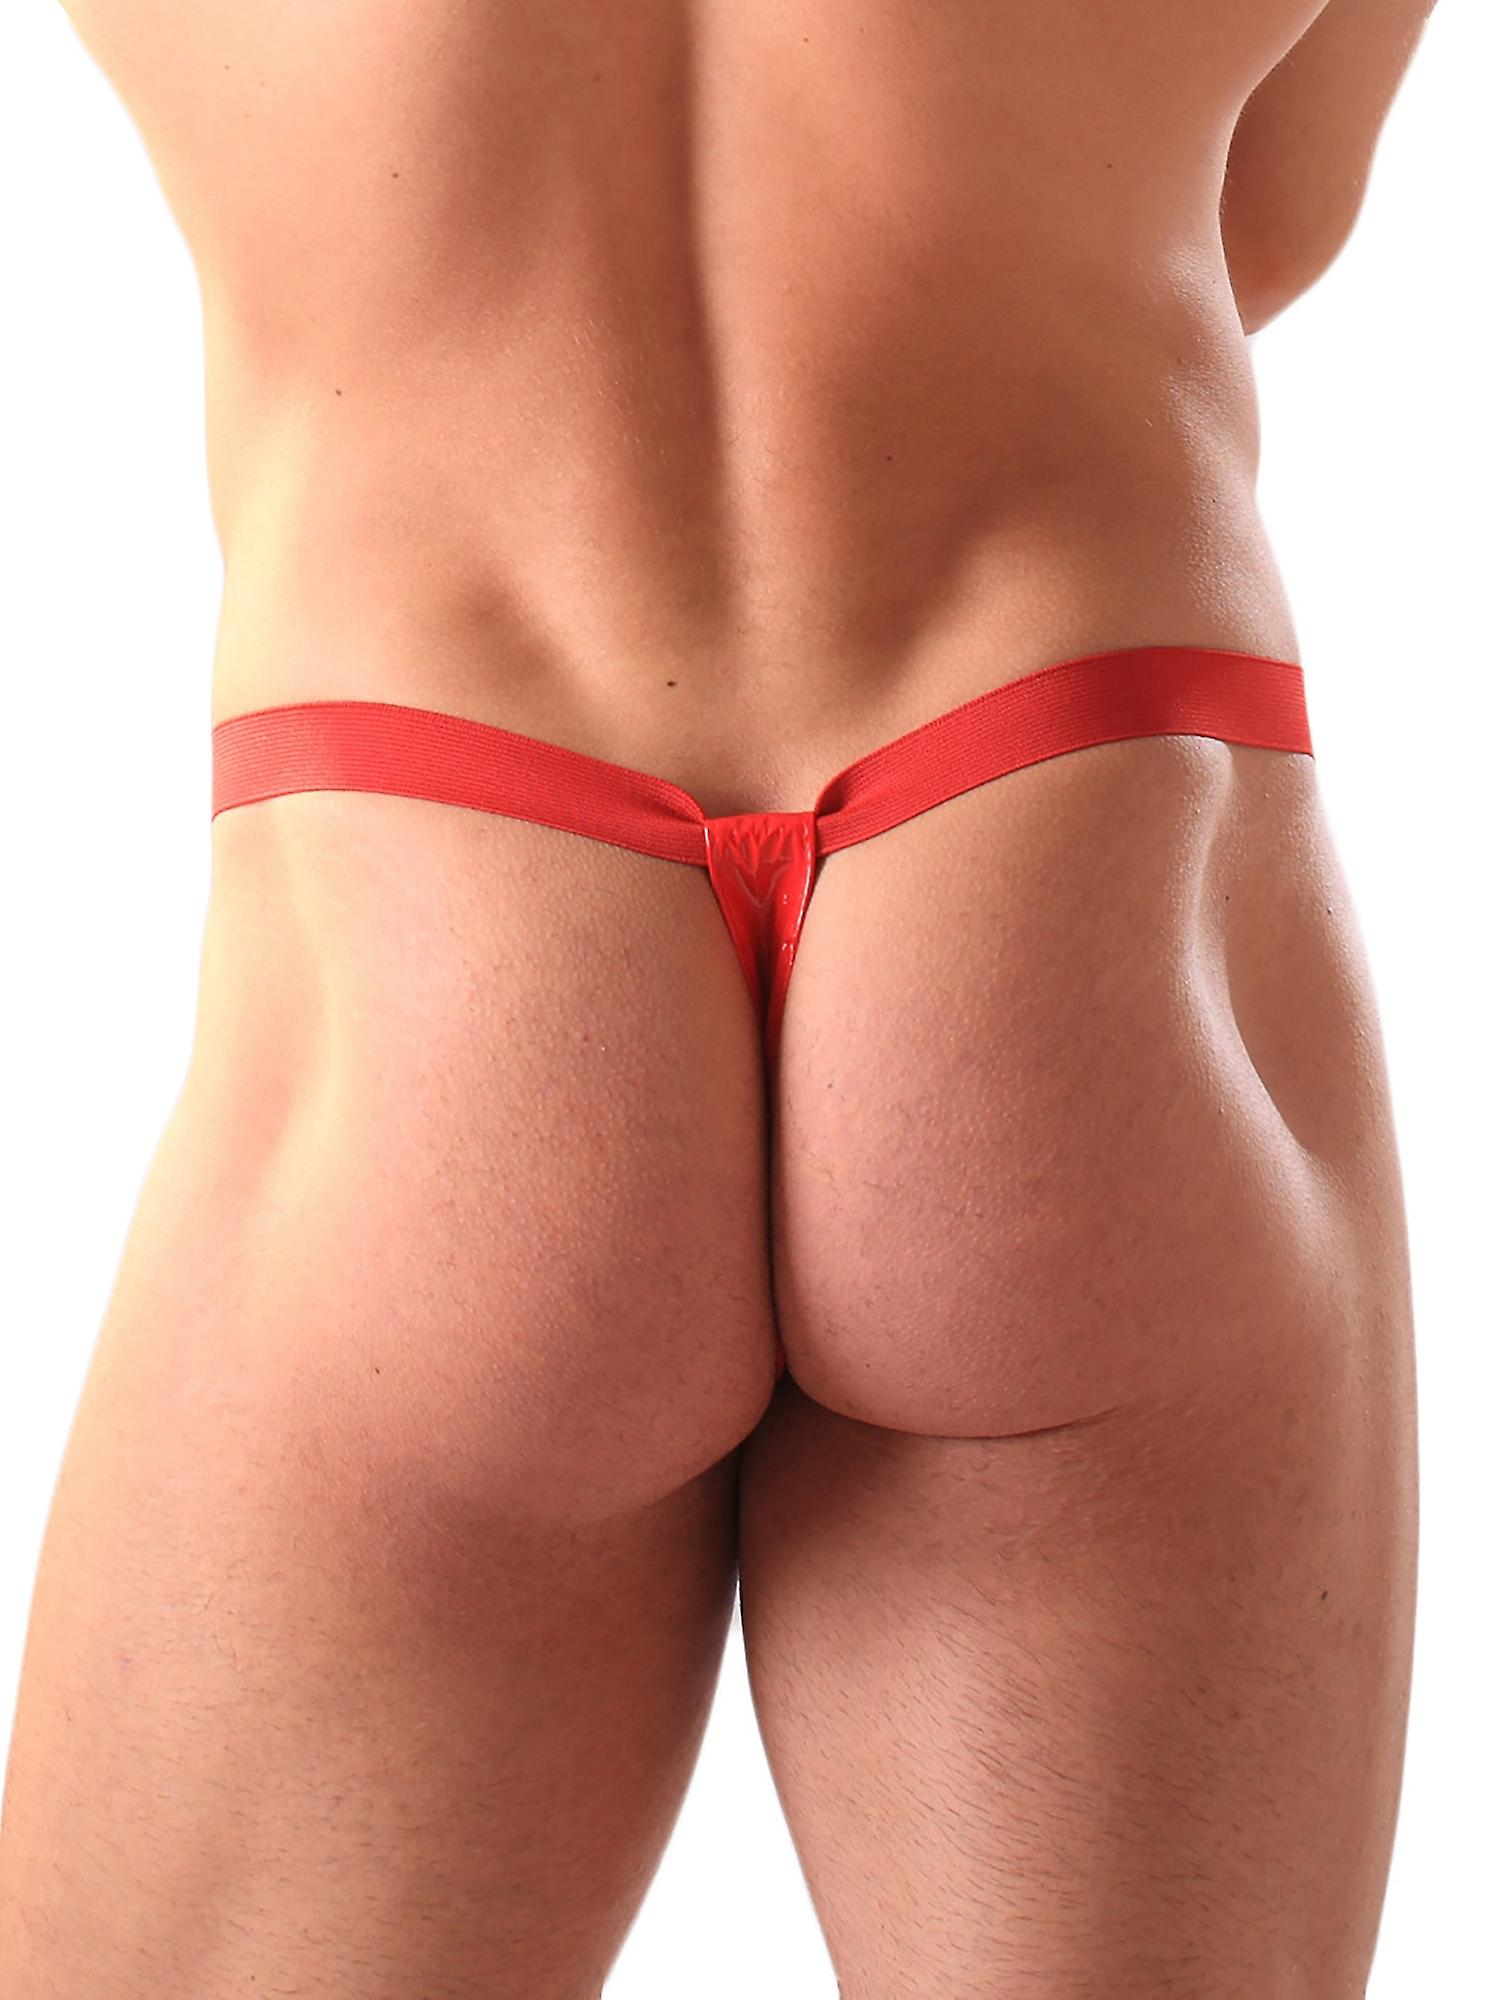 Honour Men's Sexy Thong in PVC Red G String Essential Bedroom Lingerie, PVC